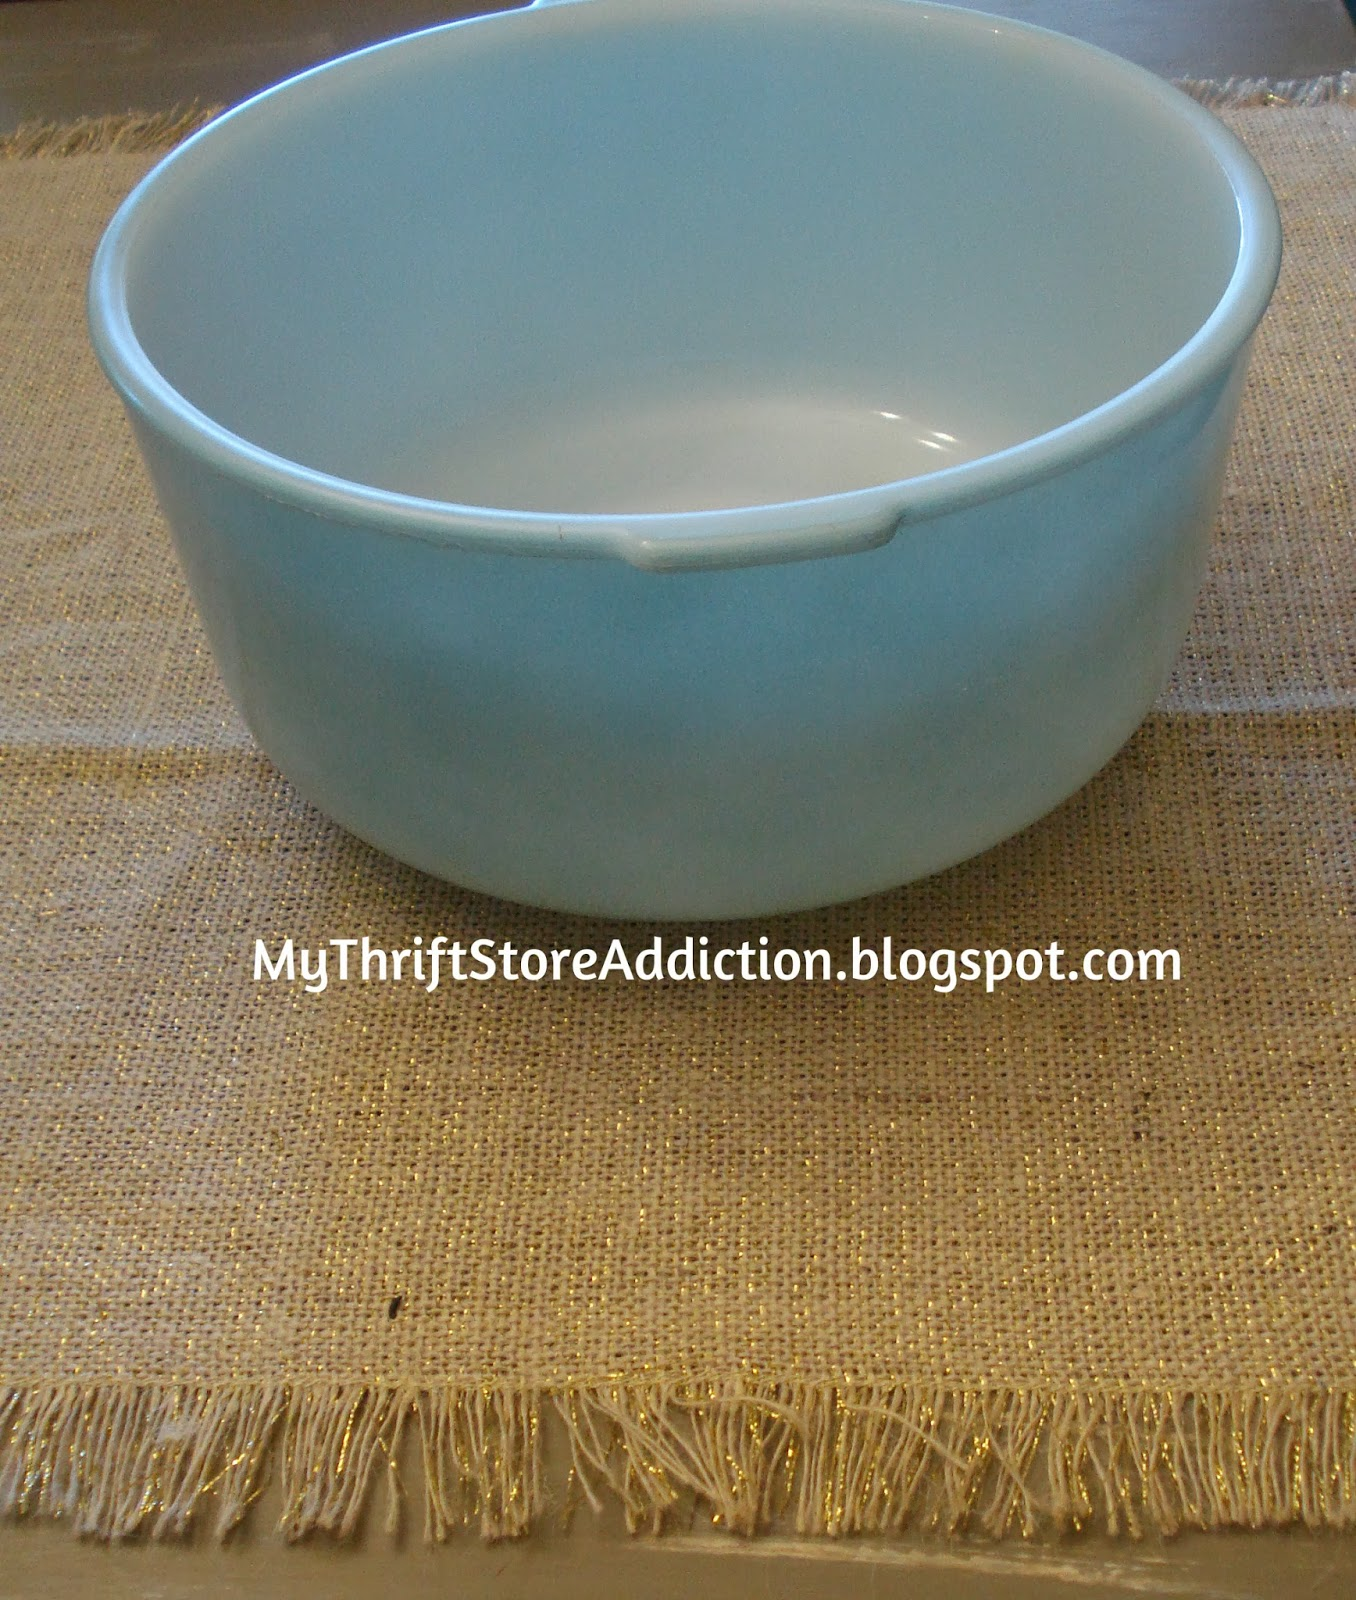 Vintage Sunbeam Glasbake mixing bowl